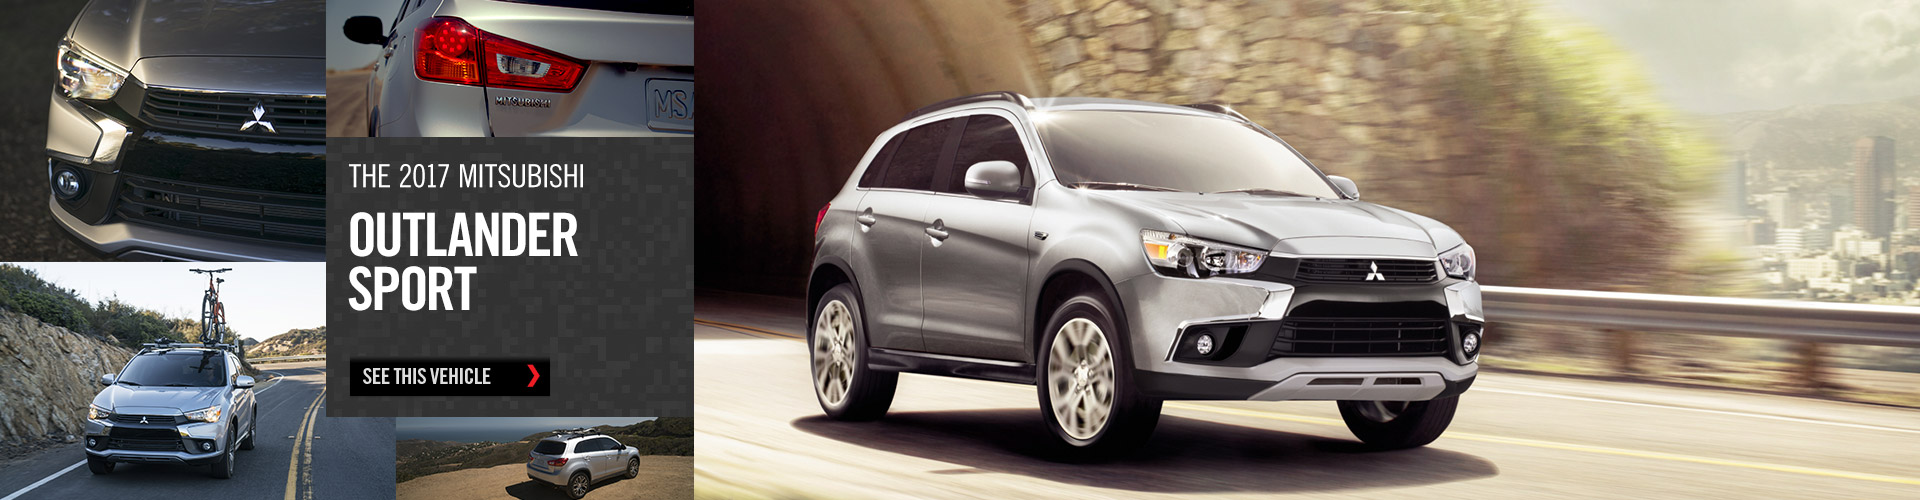 marquee-Outlander-Sport